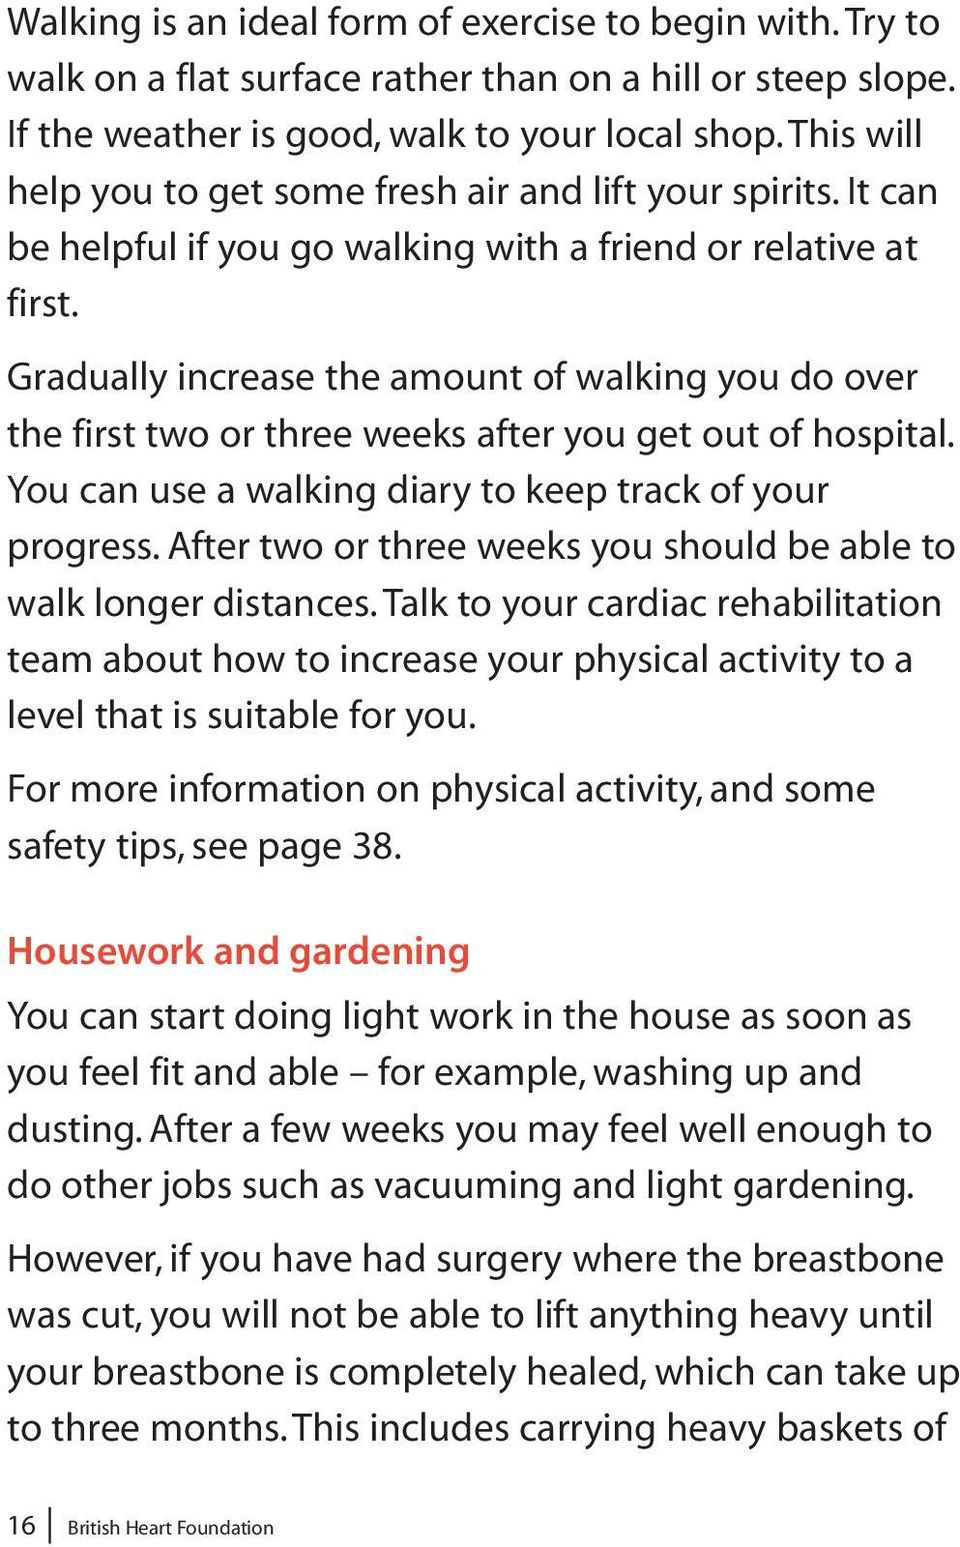 Gradually increase the amount of walking you do over the first two or three weeks after you get out of hospital. You can use a walking diary to keep track of your progress.